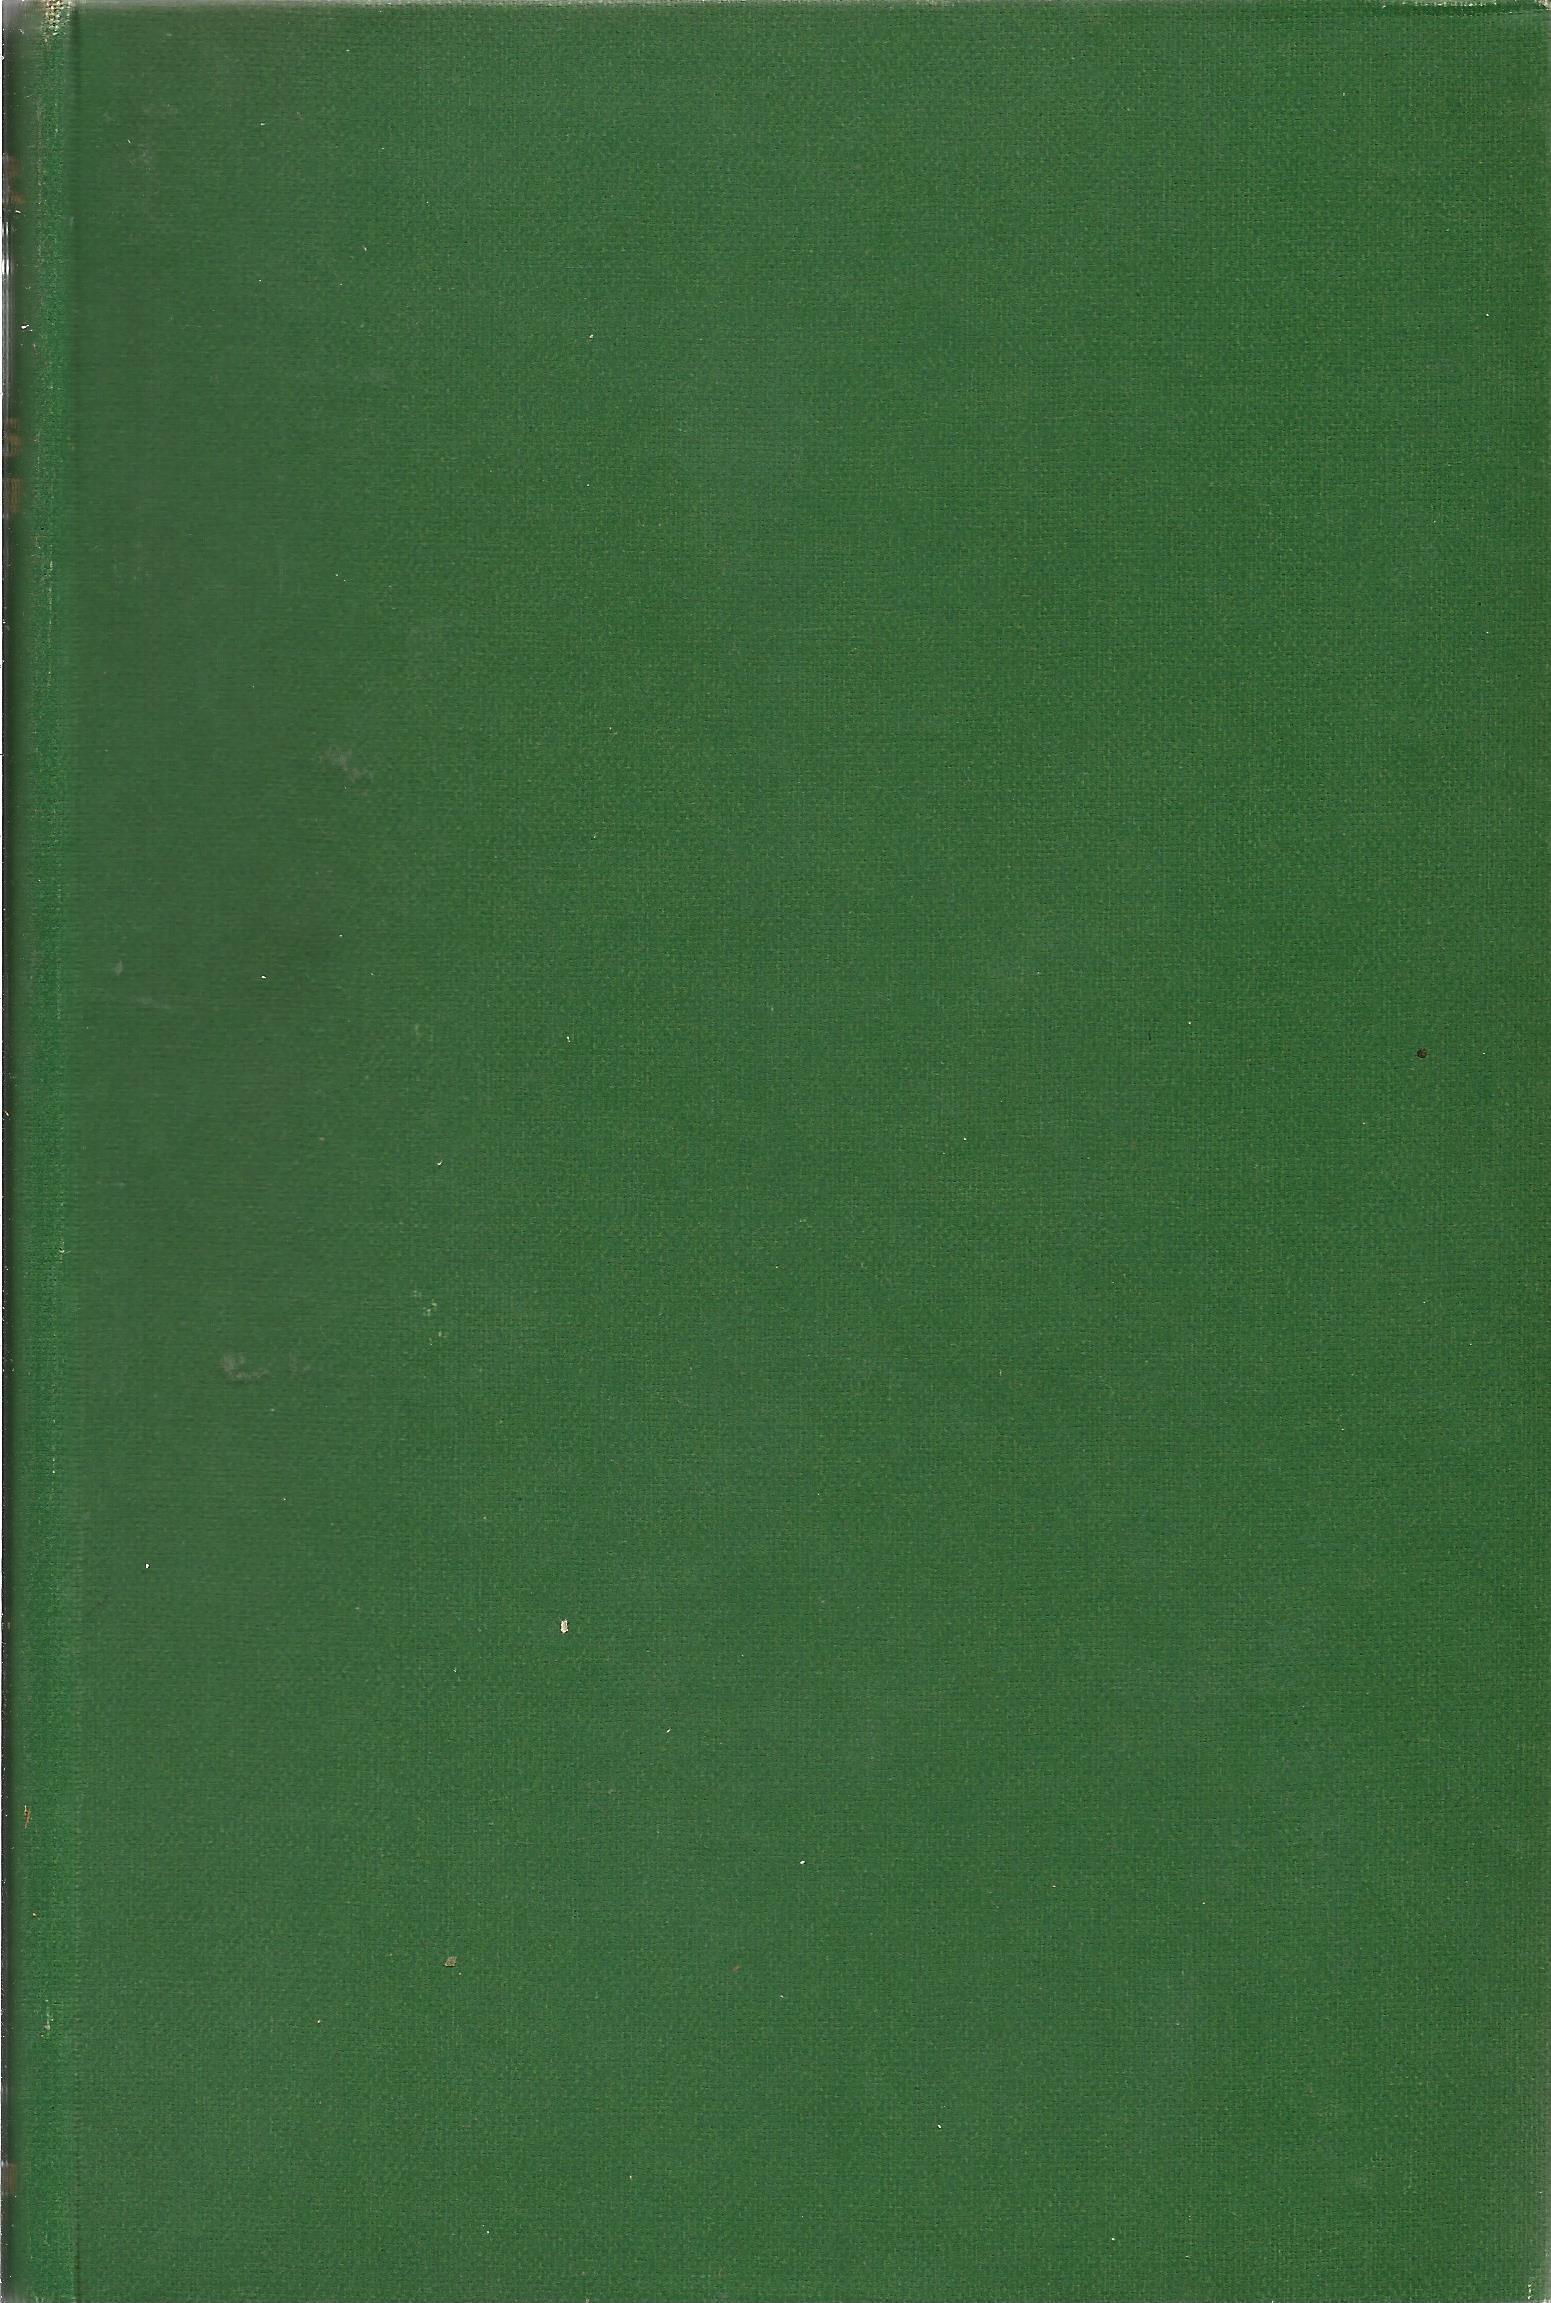 Signed Hardback Book The River Line by Charles Morgan First Edition 1949 published by Macmillan & Co